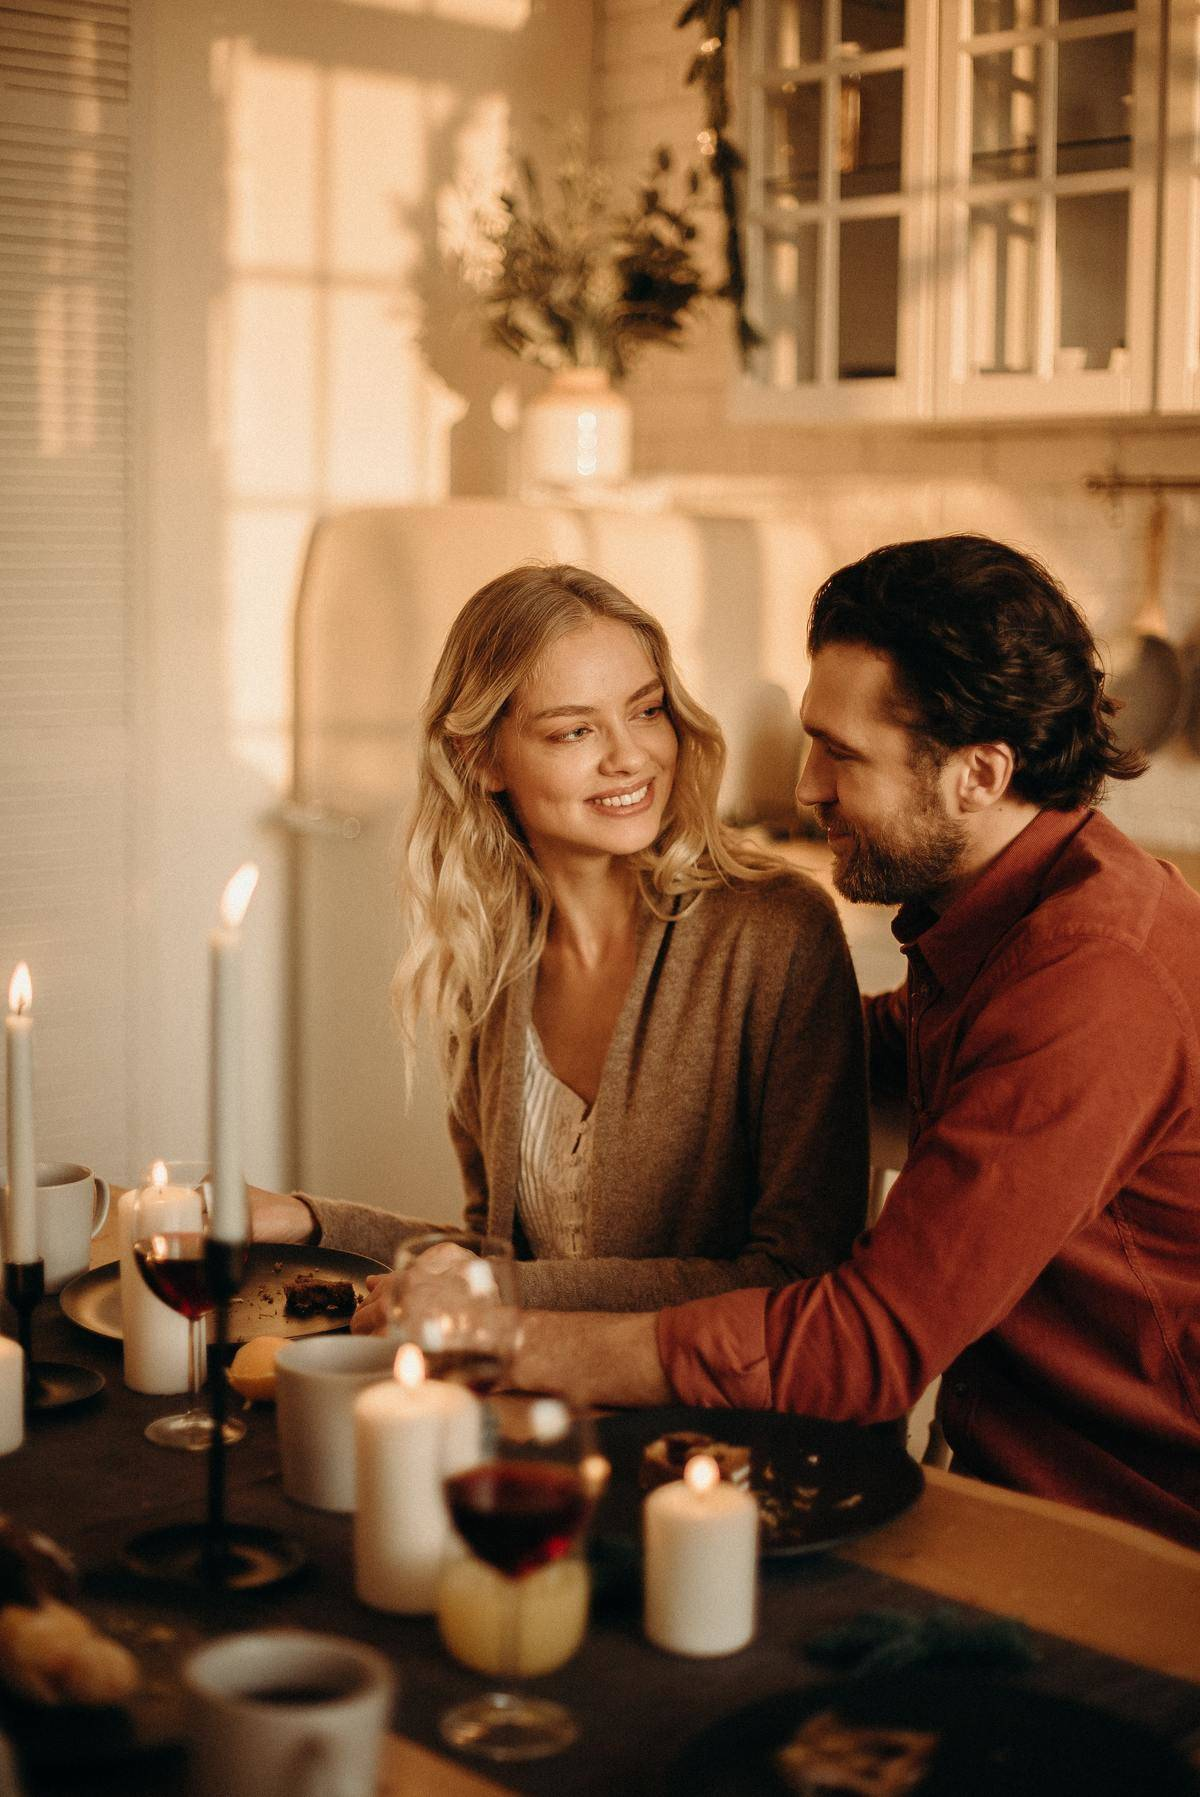 woman and man on a date at home